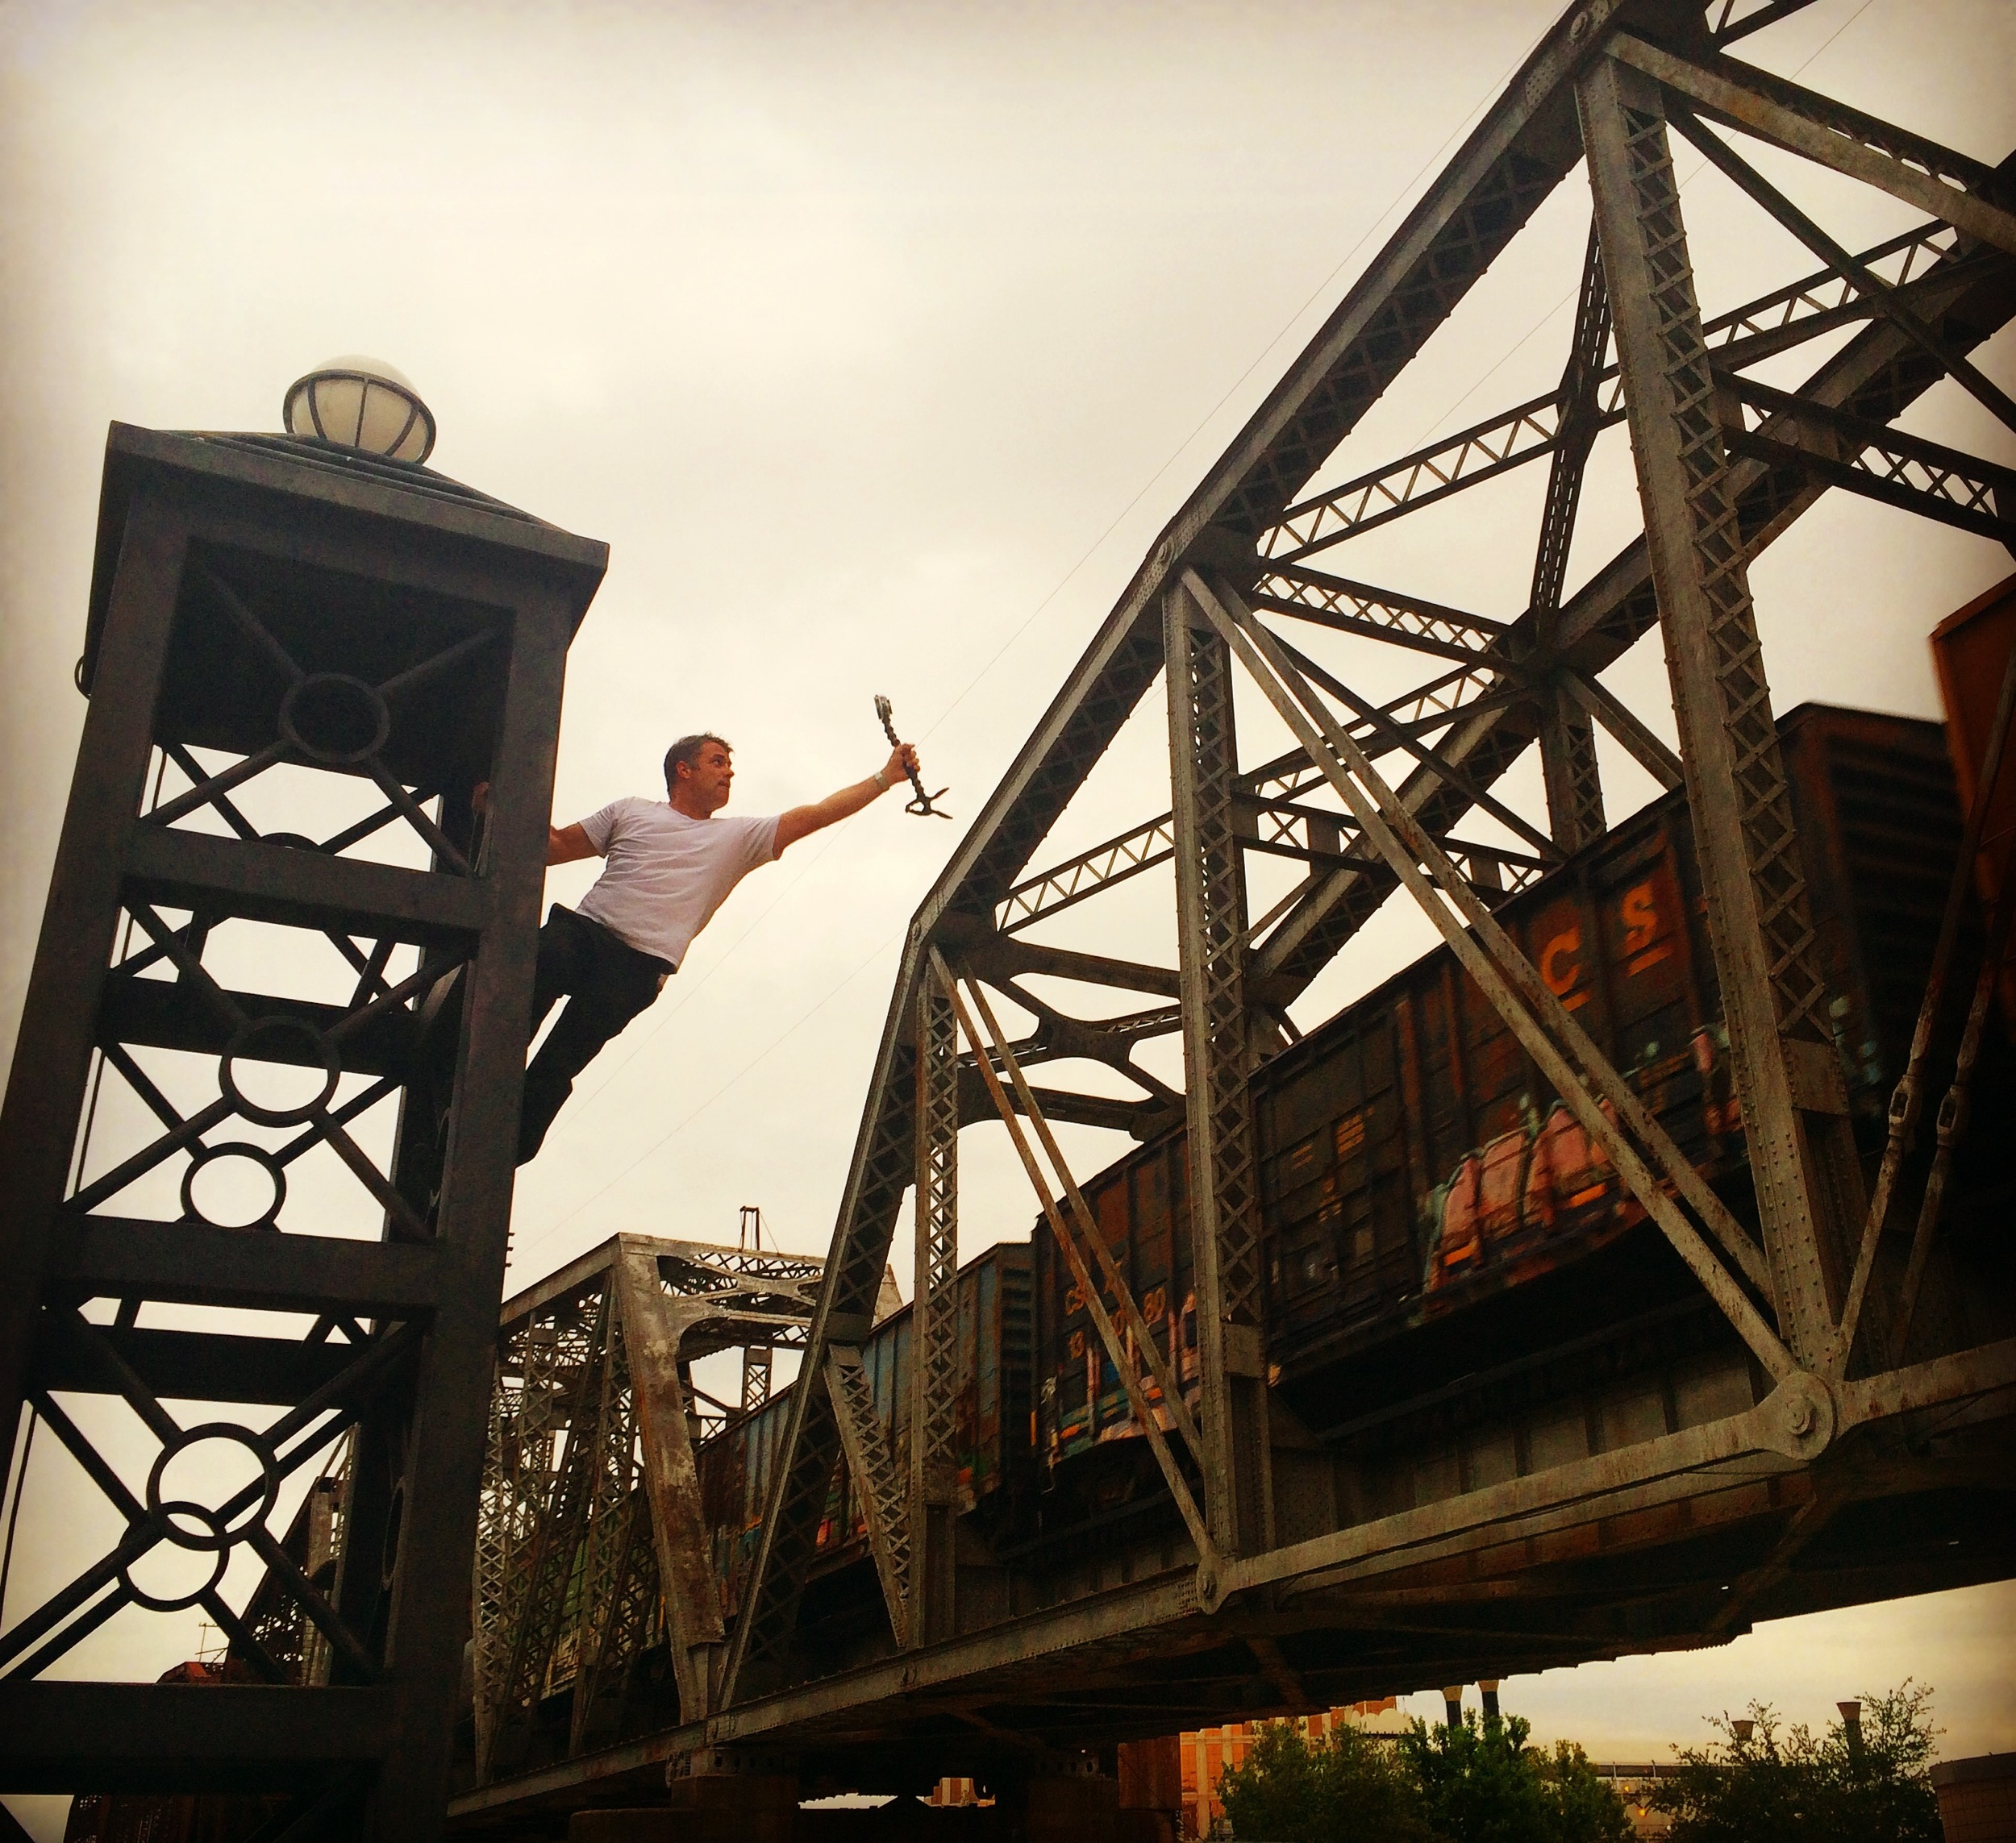 Shooting a passing elevated train in Shreveport, La. WOWMI tour, spring 2016. Photo by: Cara Salmeri